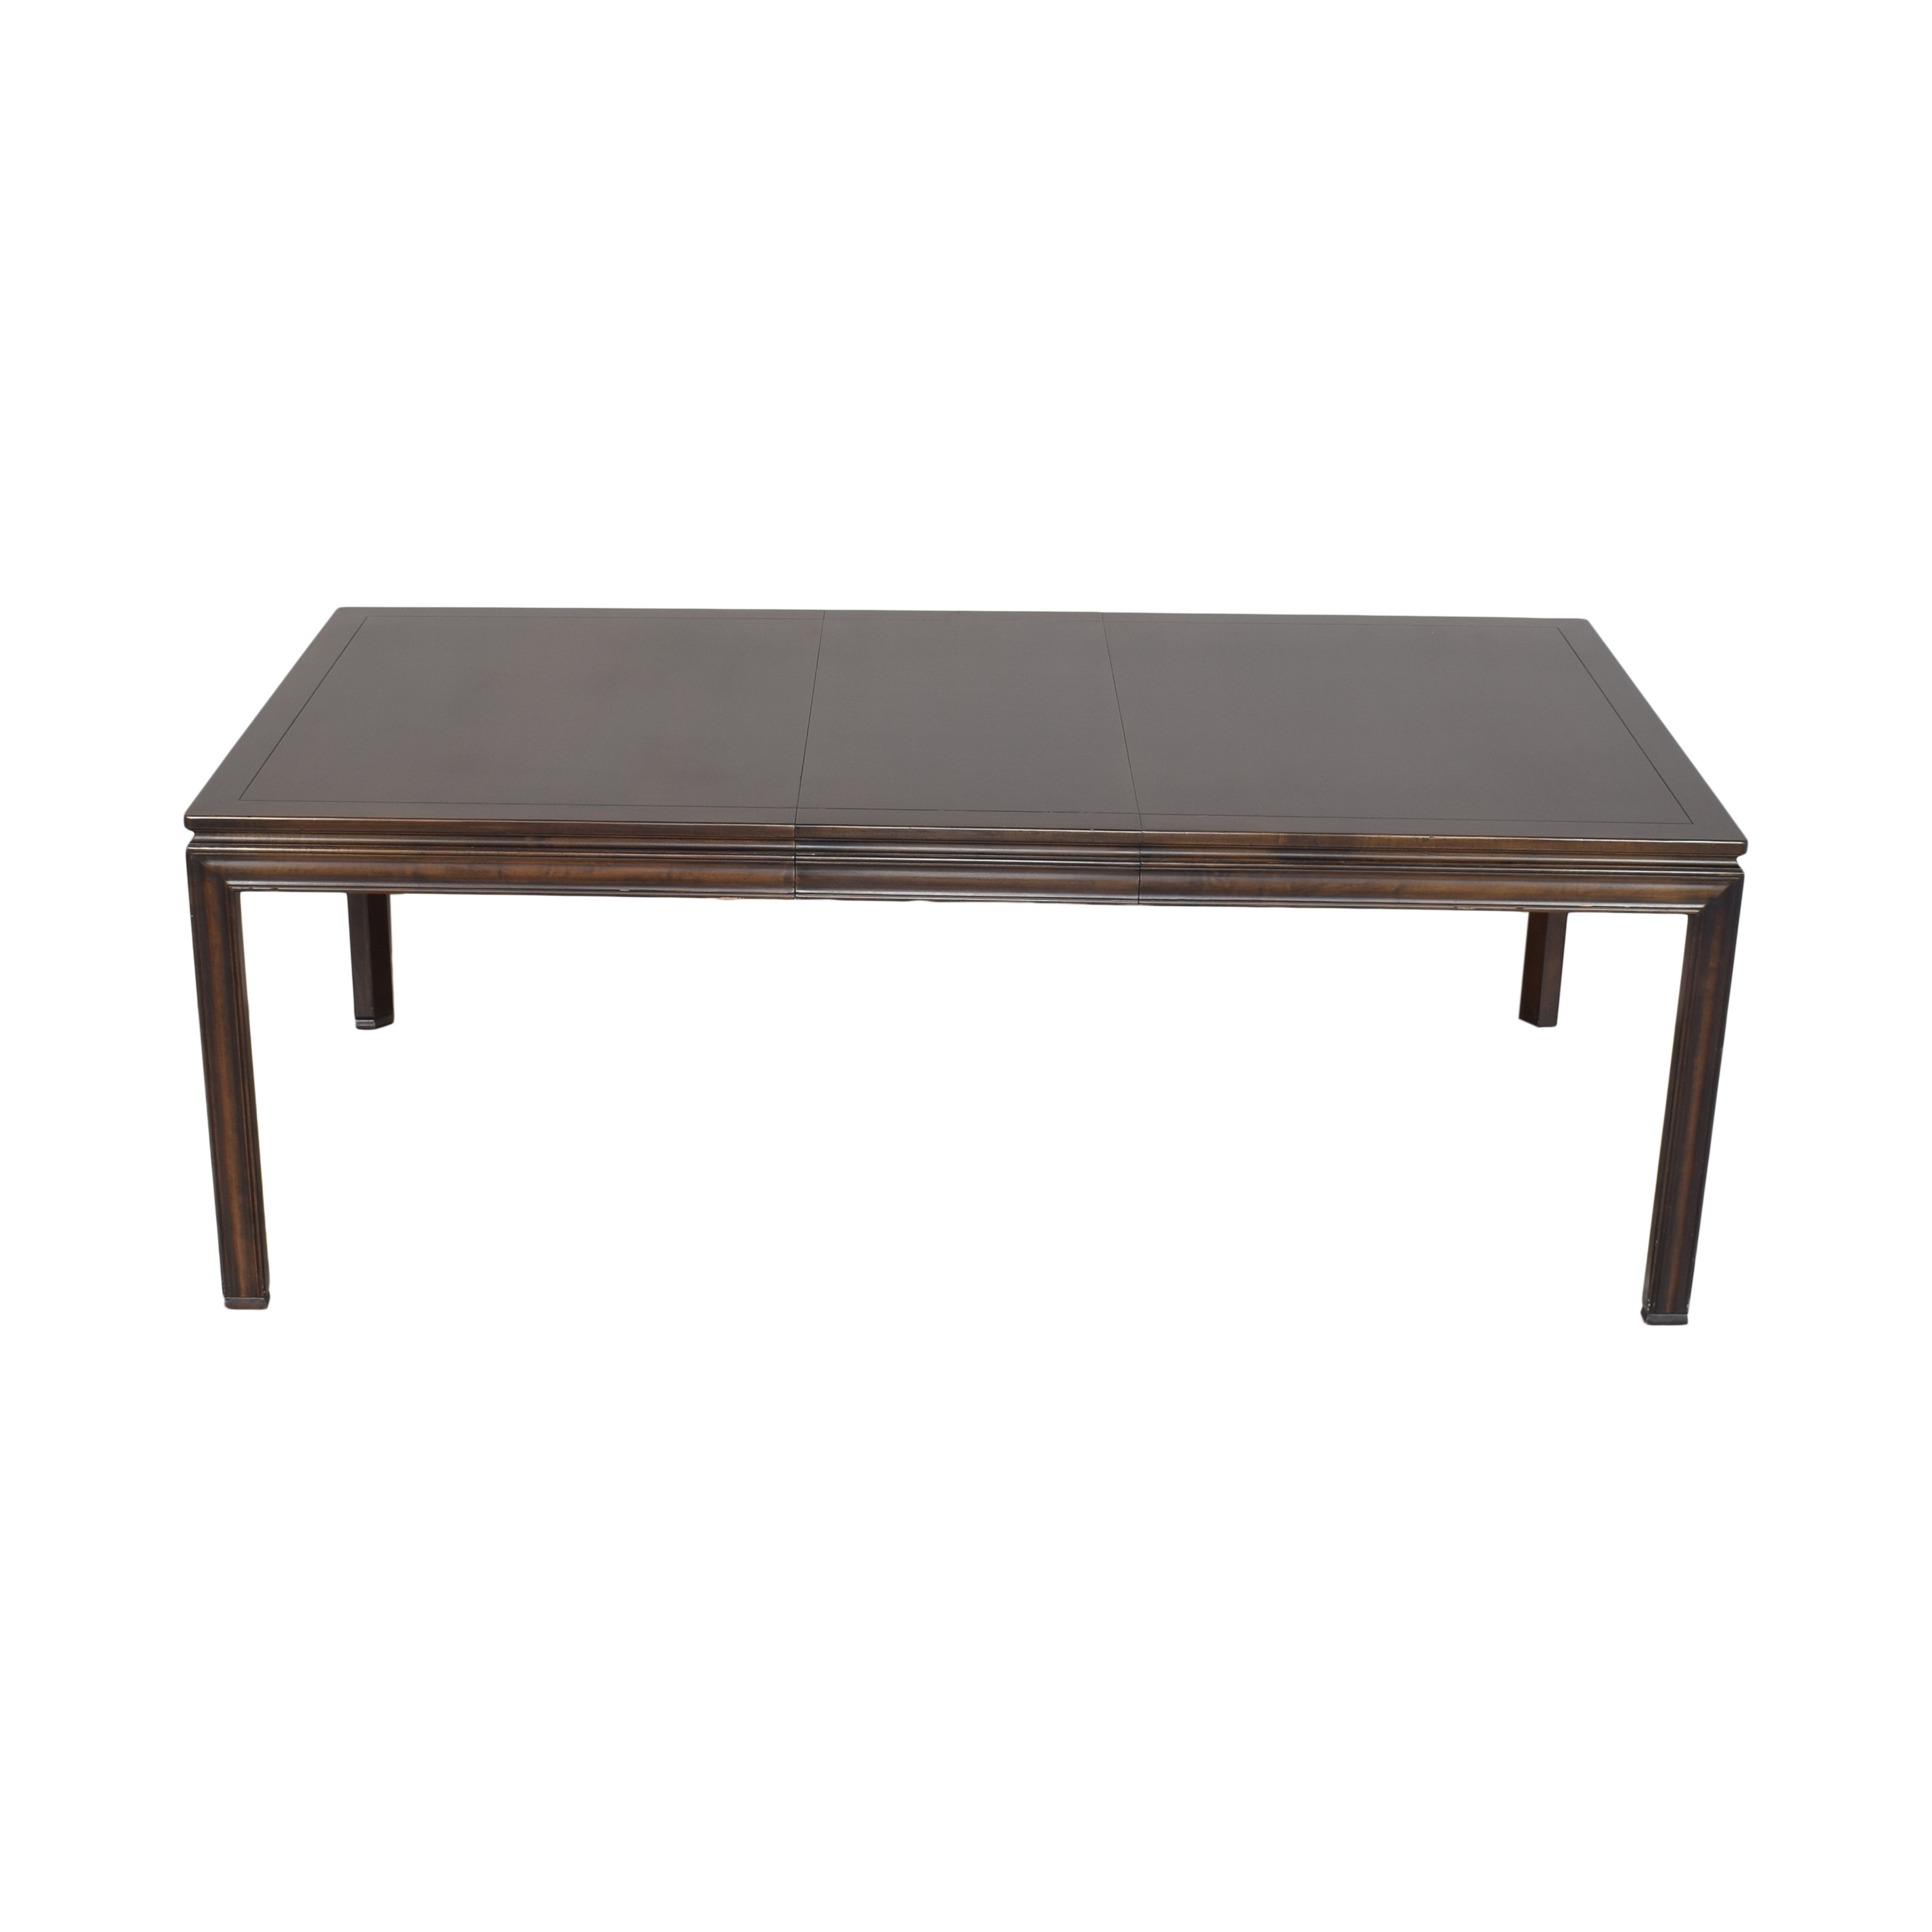 John Widdicomb Co. Extendable Dining Table / Tables